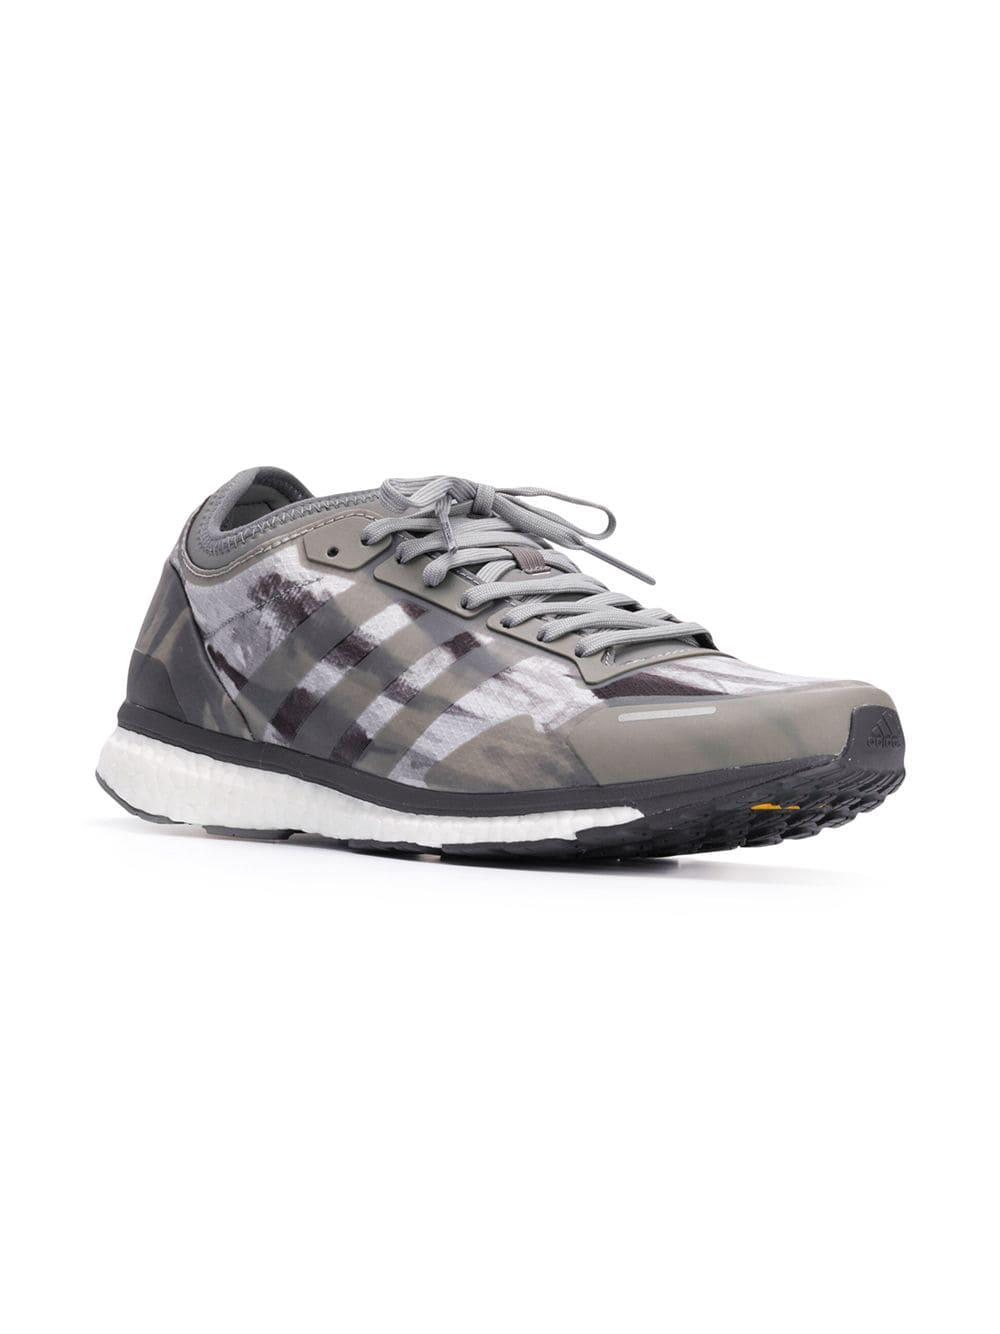 detailed look 2d414 b94df Adidas - Gray X Undefeated Adizero Adios Sneakers for Men - Lyst. View  fullscreen